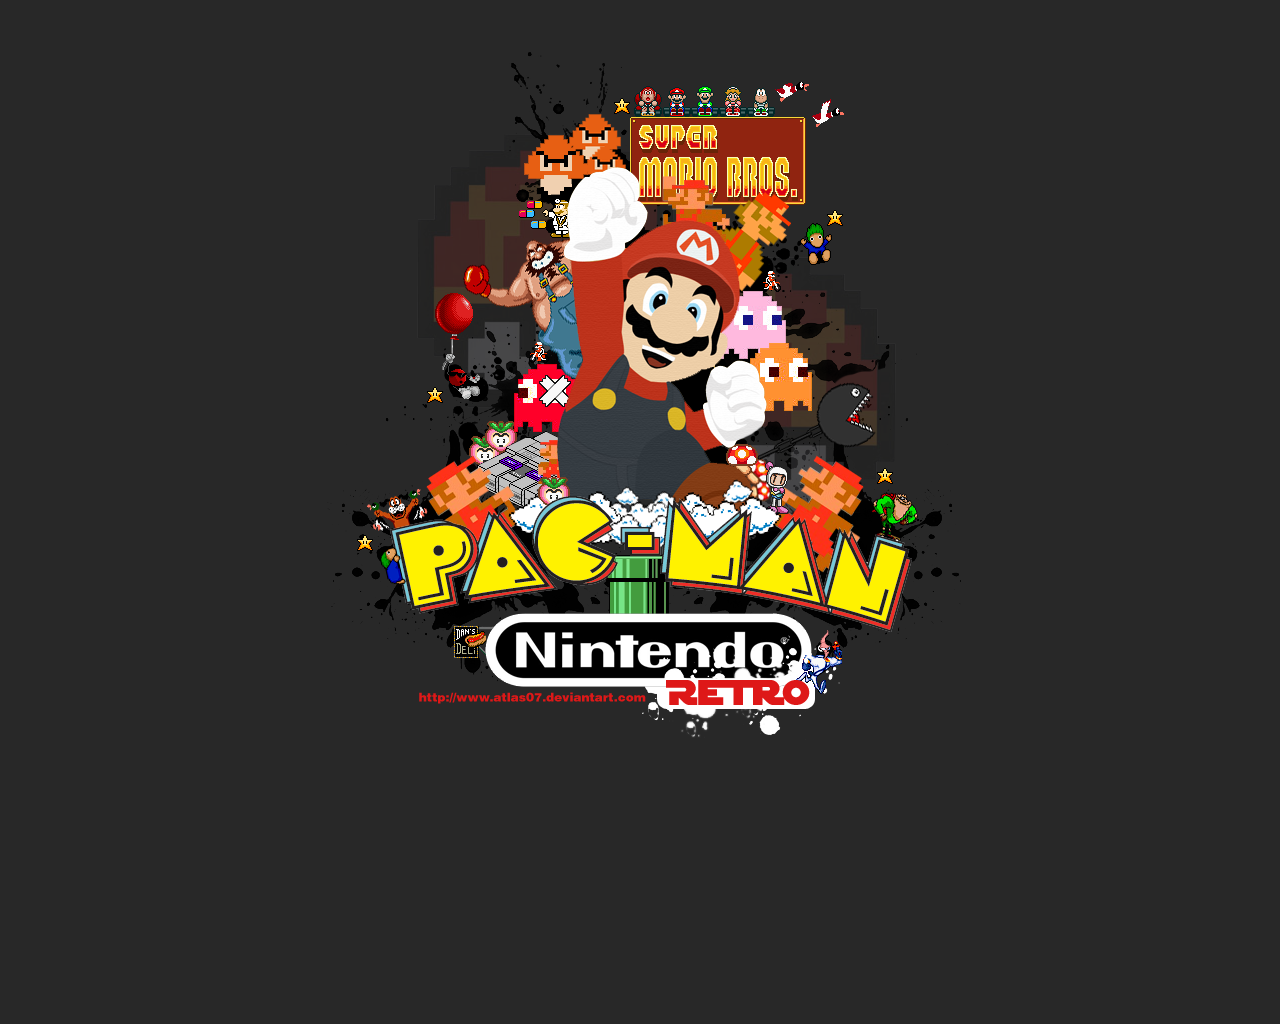 49 Retro Gaming Wallpaper On Wallpapersafari